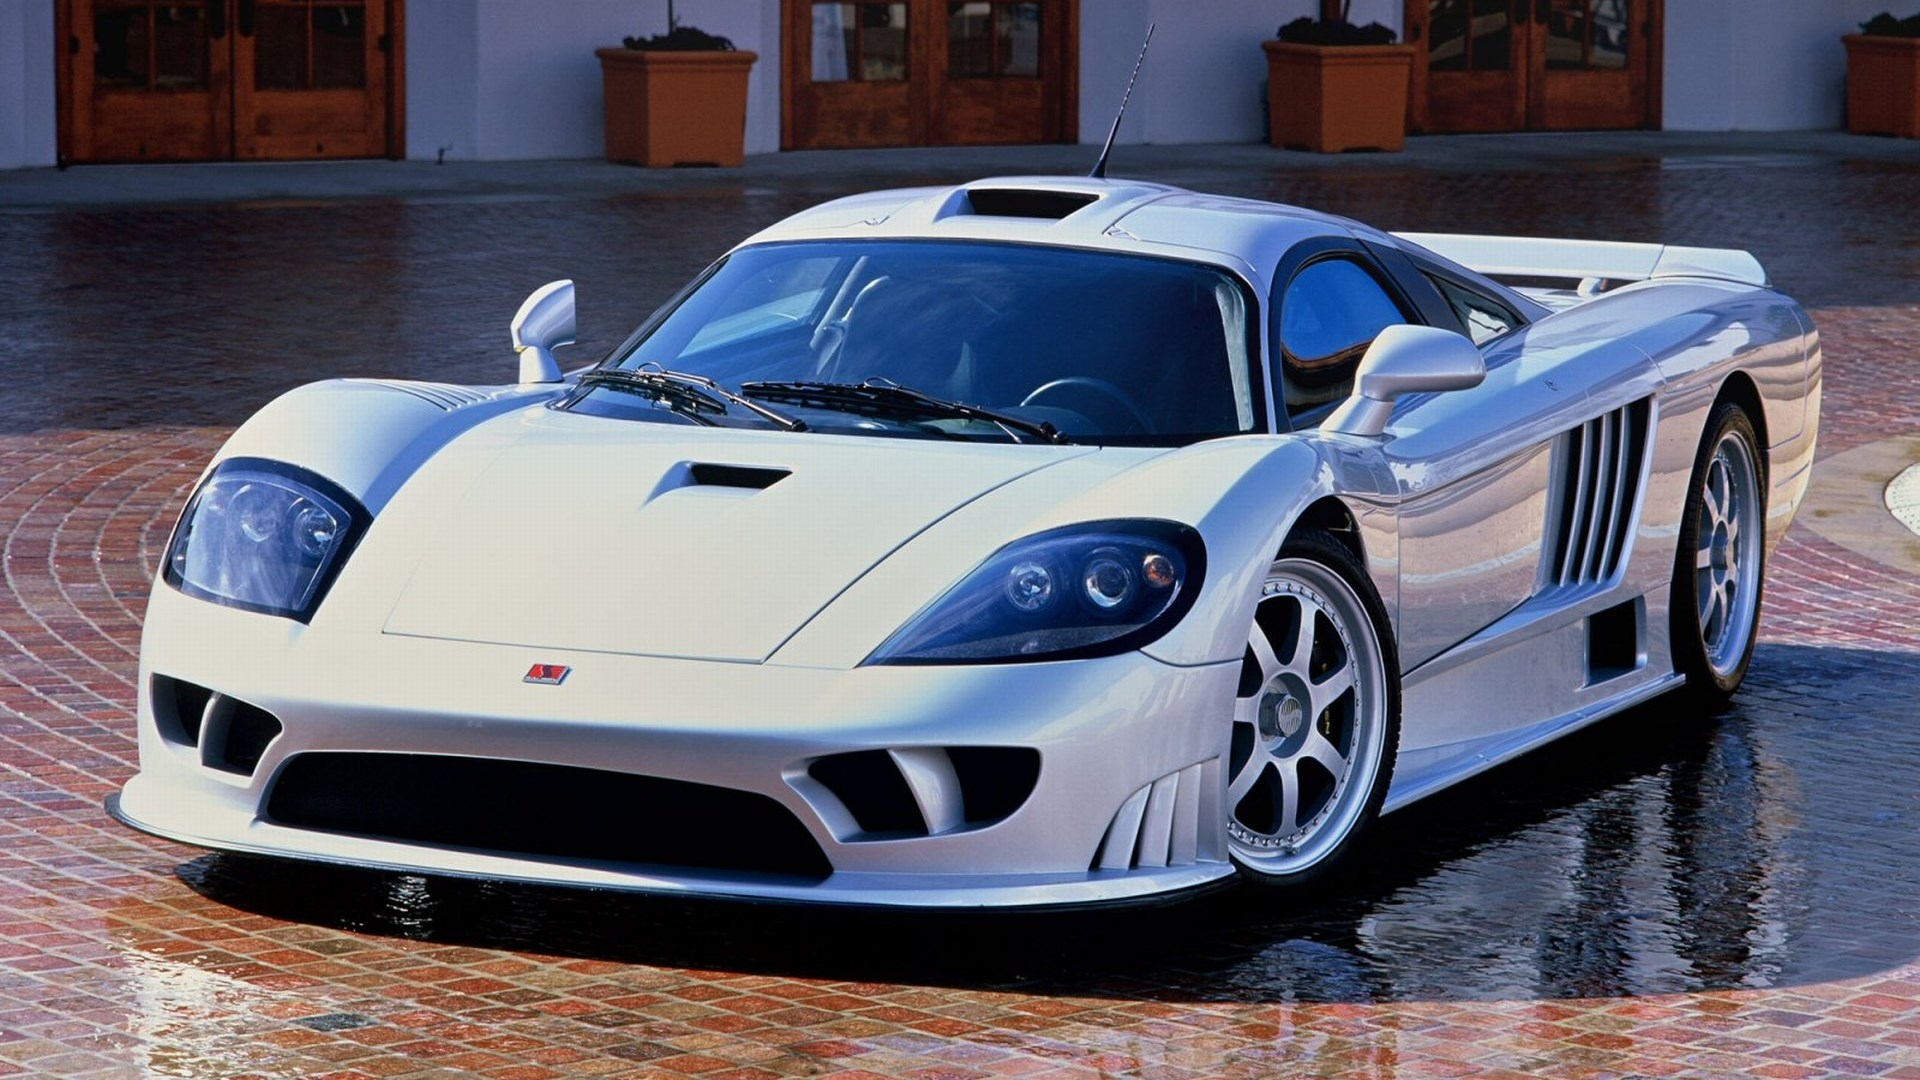 1920x1080-Widescreen-saleen-wallpaper-wpc5801101